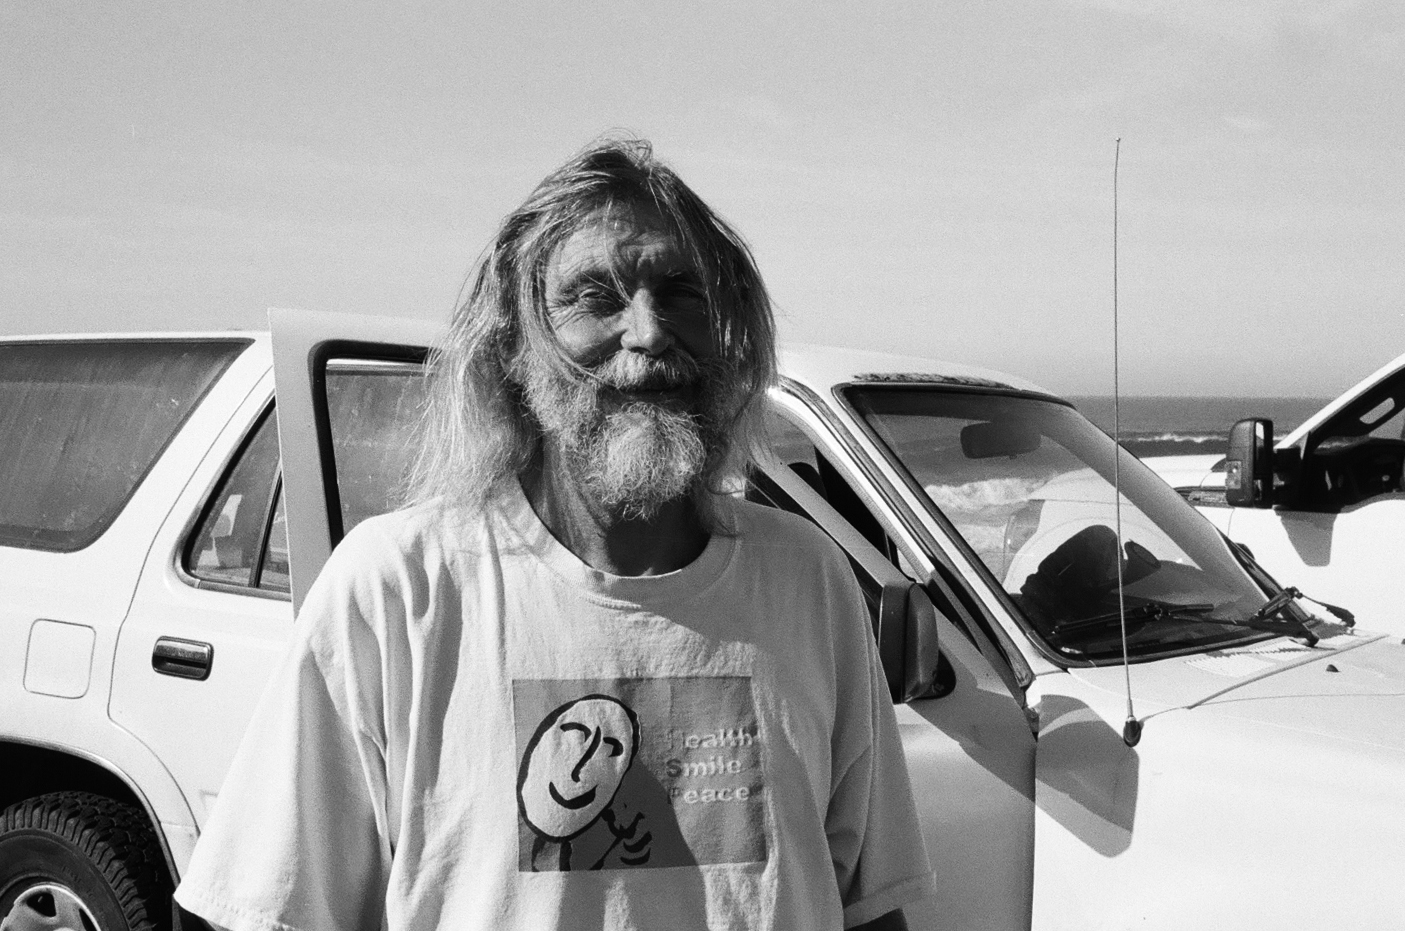 Super cool dude who lives in his car. If you see him tell him hello.